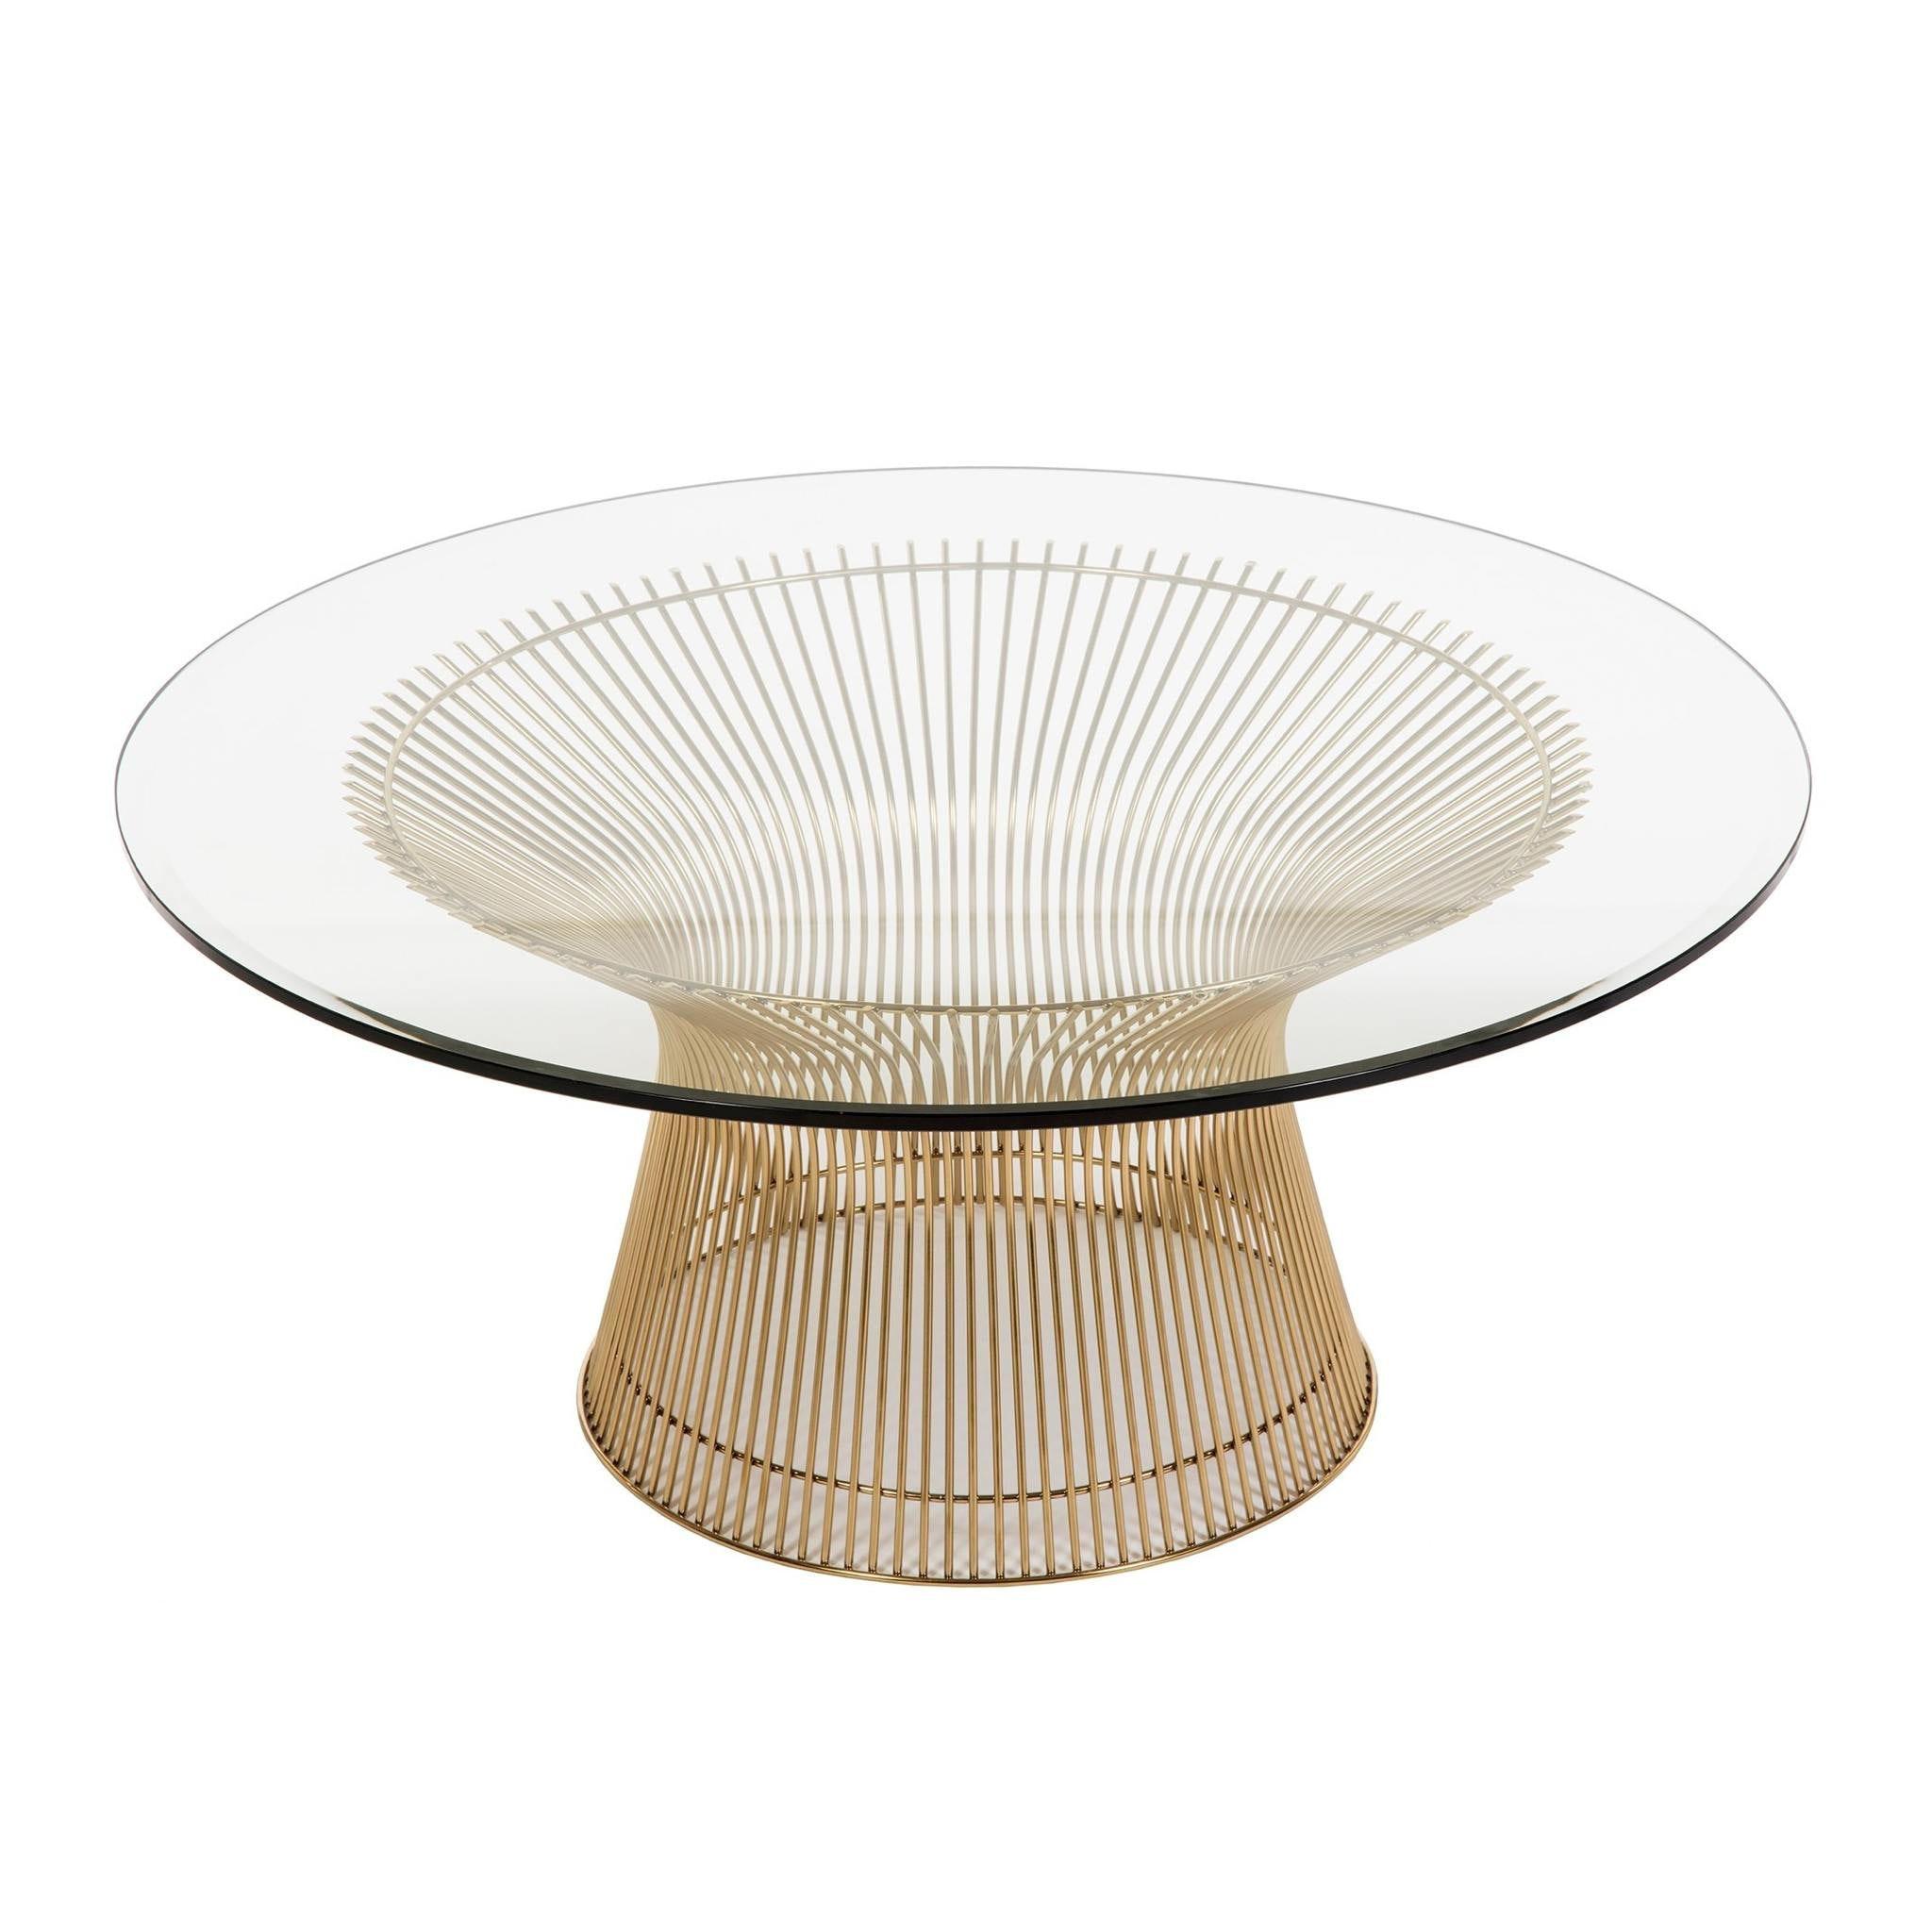 Platner Coffee Table in Gold by Knoll